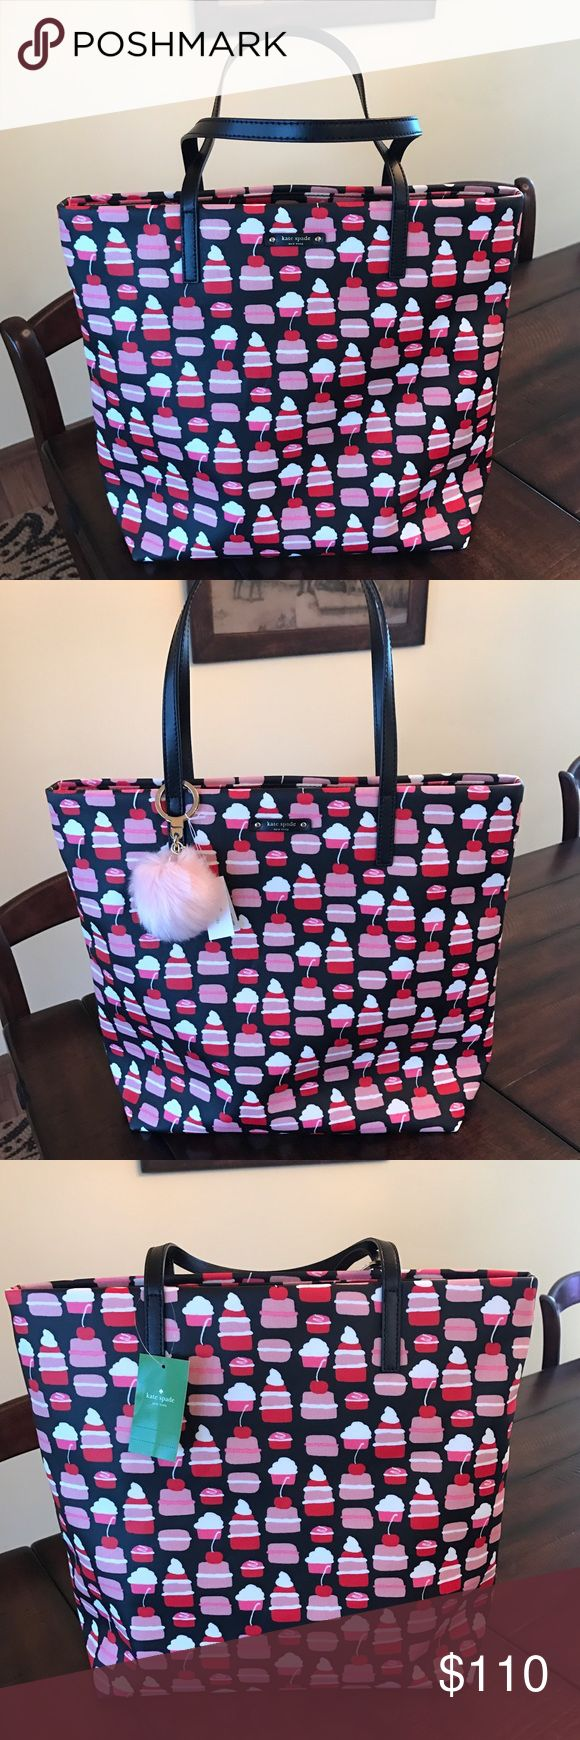 ♦️Kate Spade Take The Cake Mini Pastry Bon Shopper Kate Spade Take The Cake Mini Pastry Bon Shopper. NEW WITH TAGS!!  Selling this for a friend. This is a great Tote!  I'm thinking perfect size to have at my feet for a rode trip to hold iPad, headphones, snacks and those things I want near me. The pink or black Kate Spade fluff Pom key fob looks adorable on this bag. These are sold and listed separately. 🚫NO TRADES!  Only serious offers will be considered kate spade Bags Totes